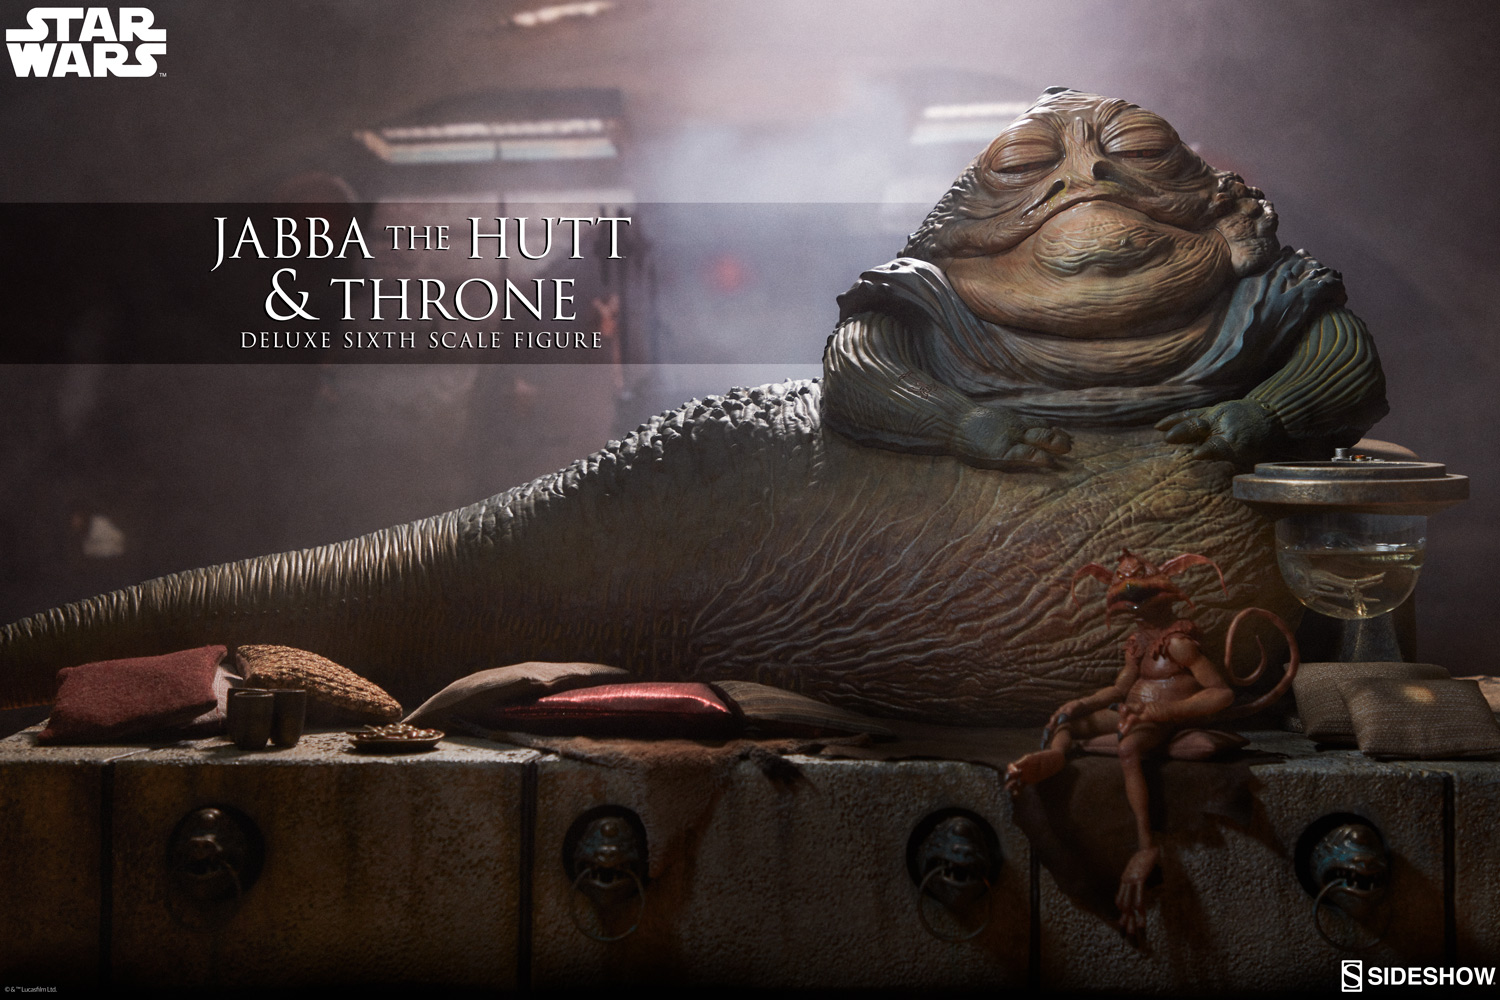 Pre-Order Sideshow Star Wars Jabba the Hutt & Throne Deluxe 1:6